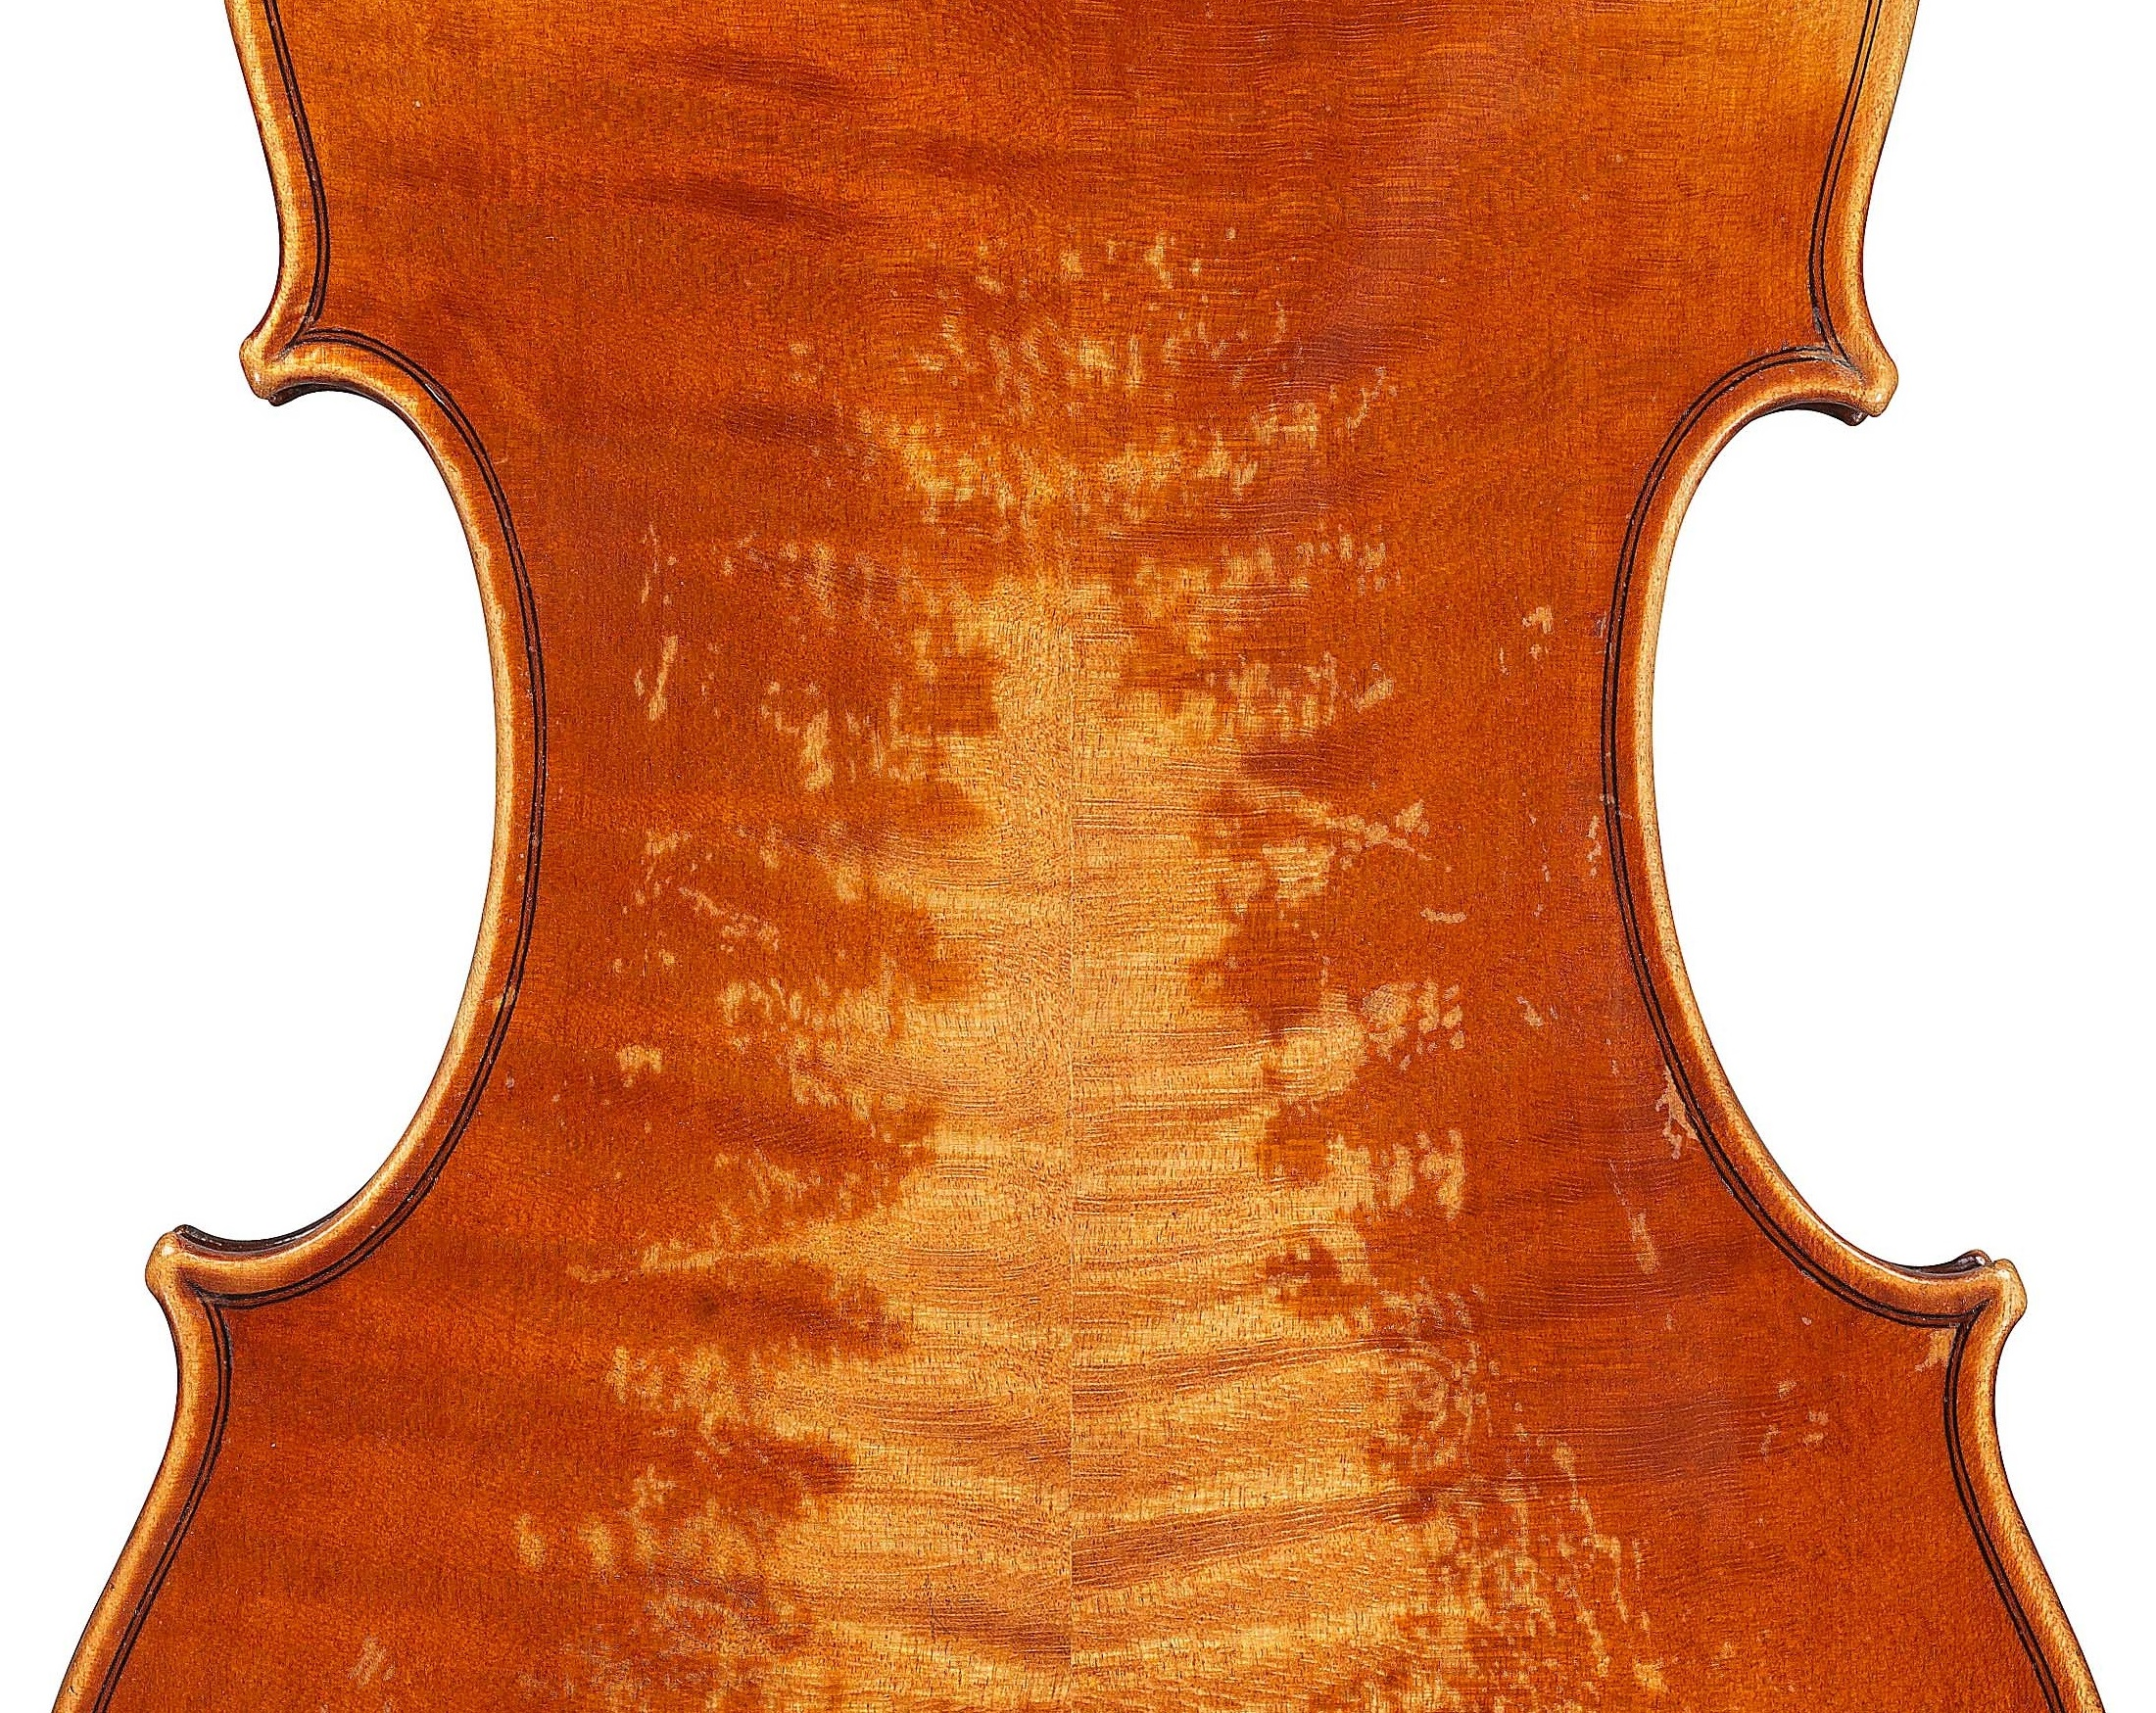 Detail of the ex-Karrman violin by JB Vuillaume, dated 1859 at Ingles & Hayday